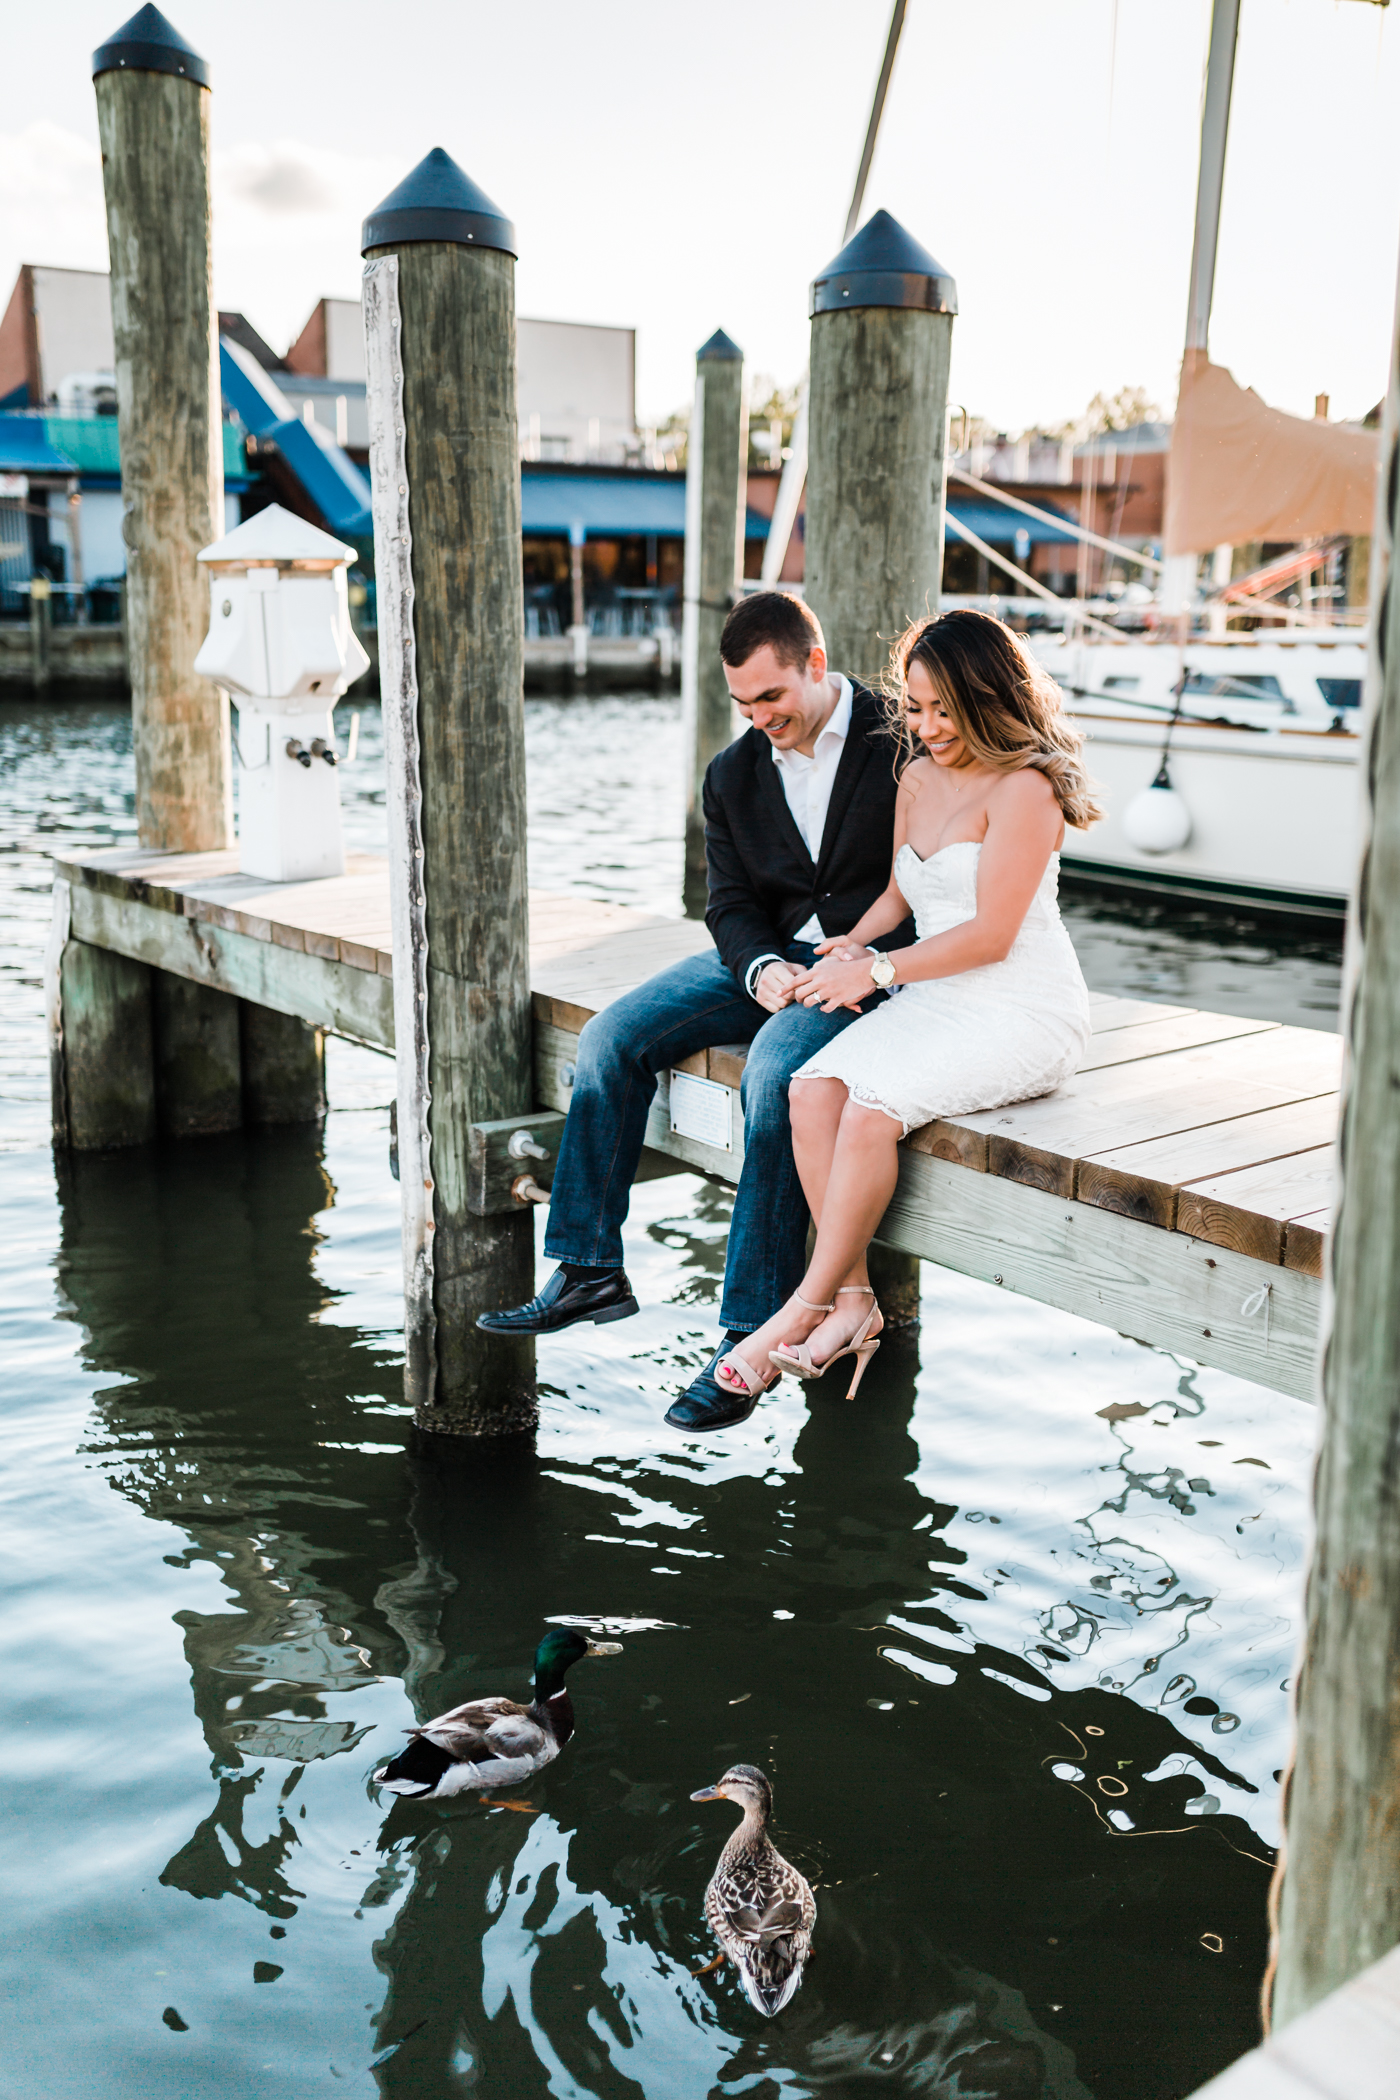 couple sitting on the dock in Annapolis and two ducks come to say hello